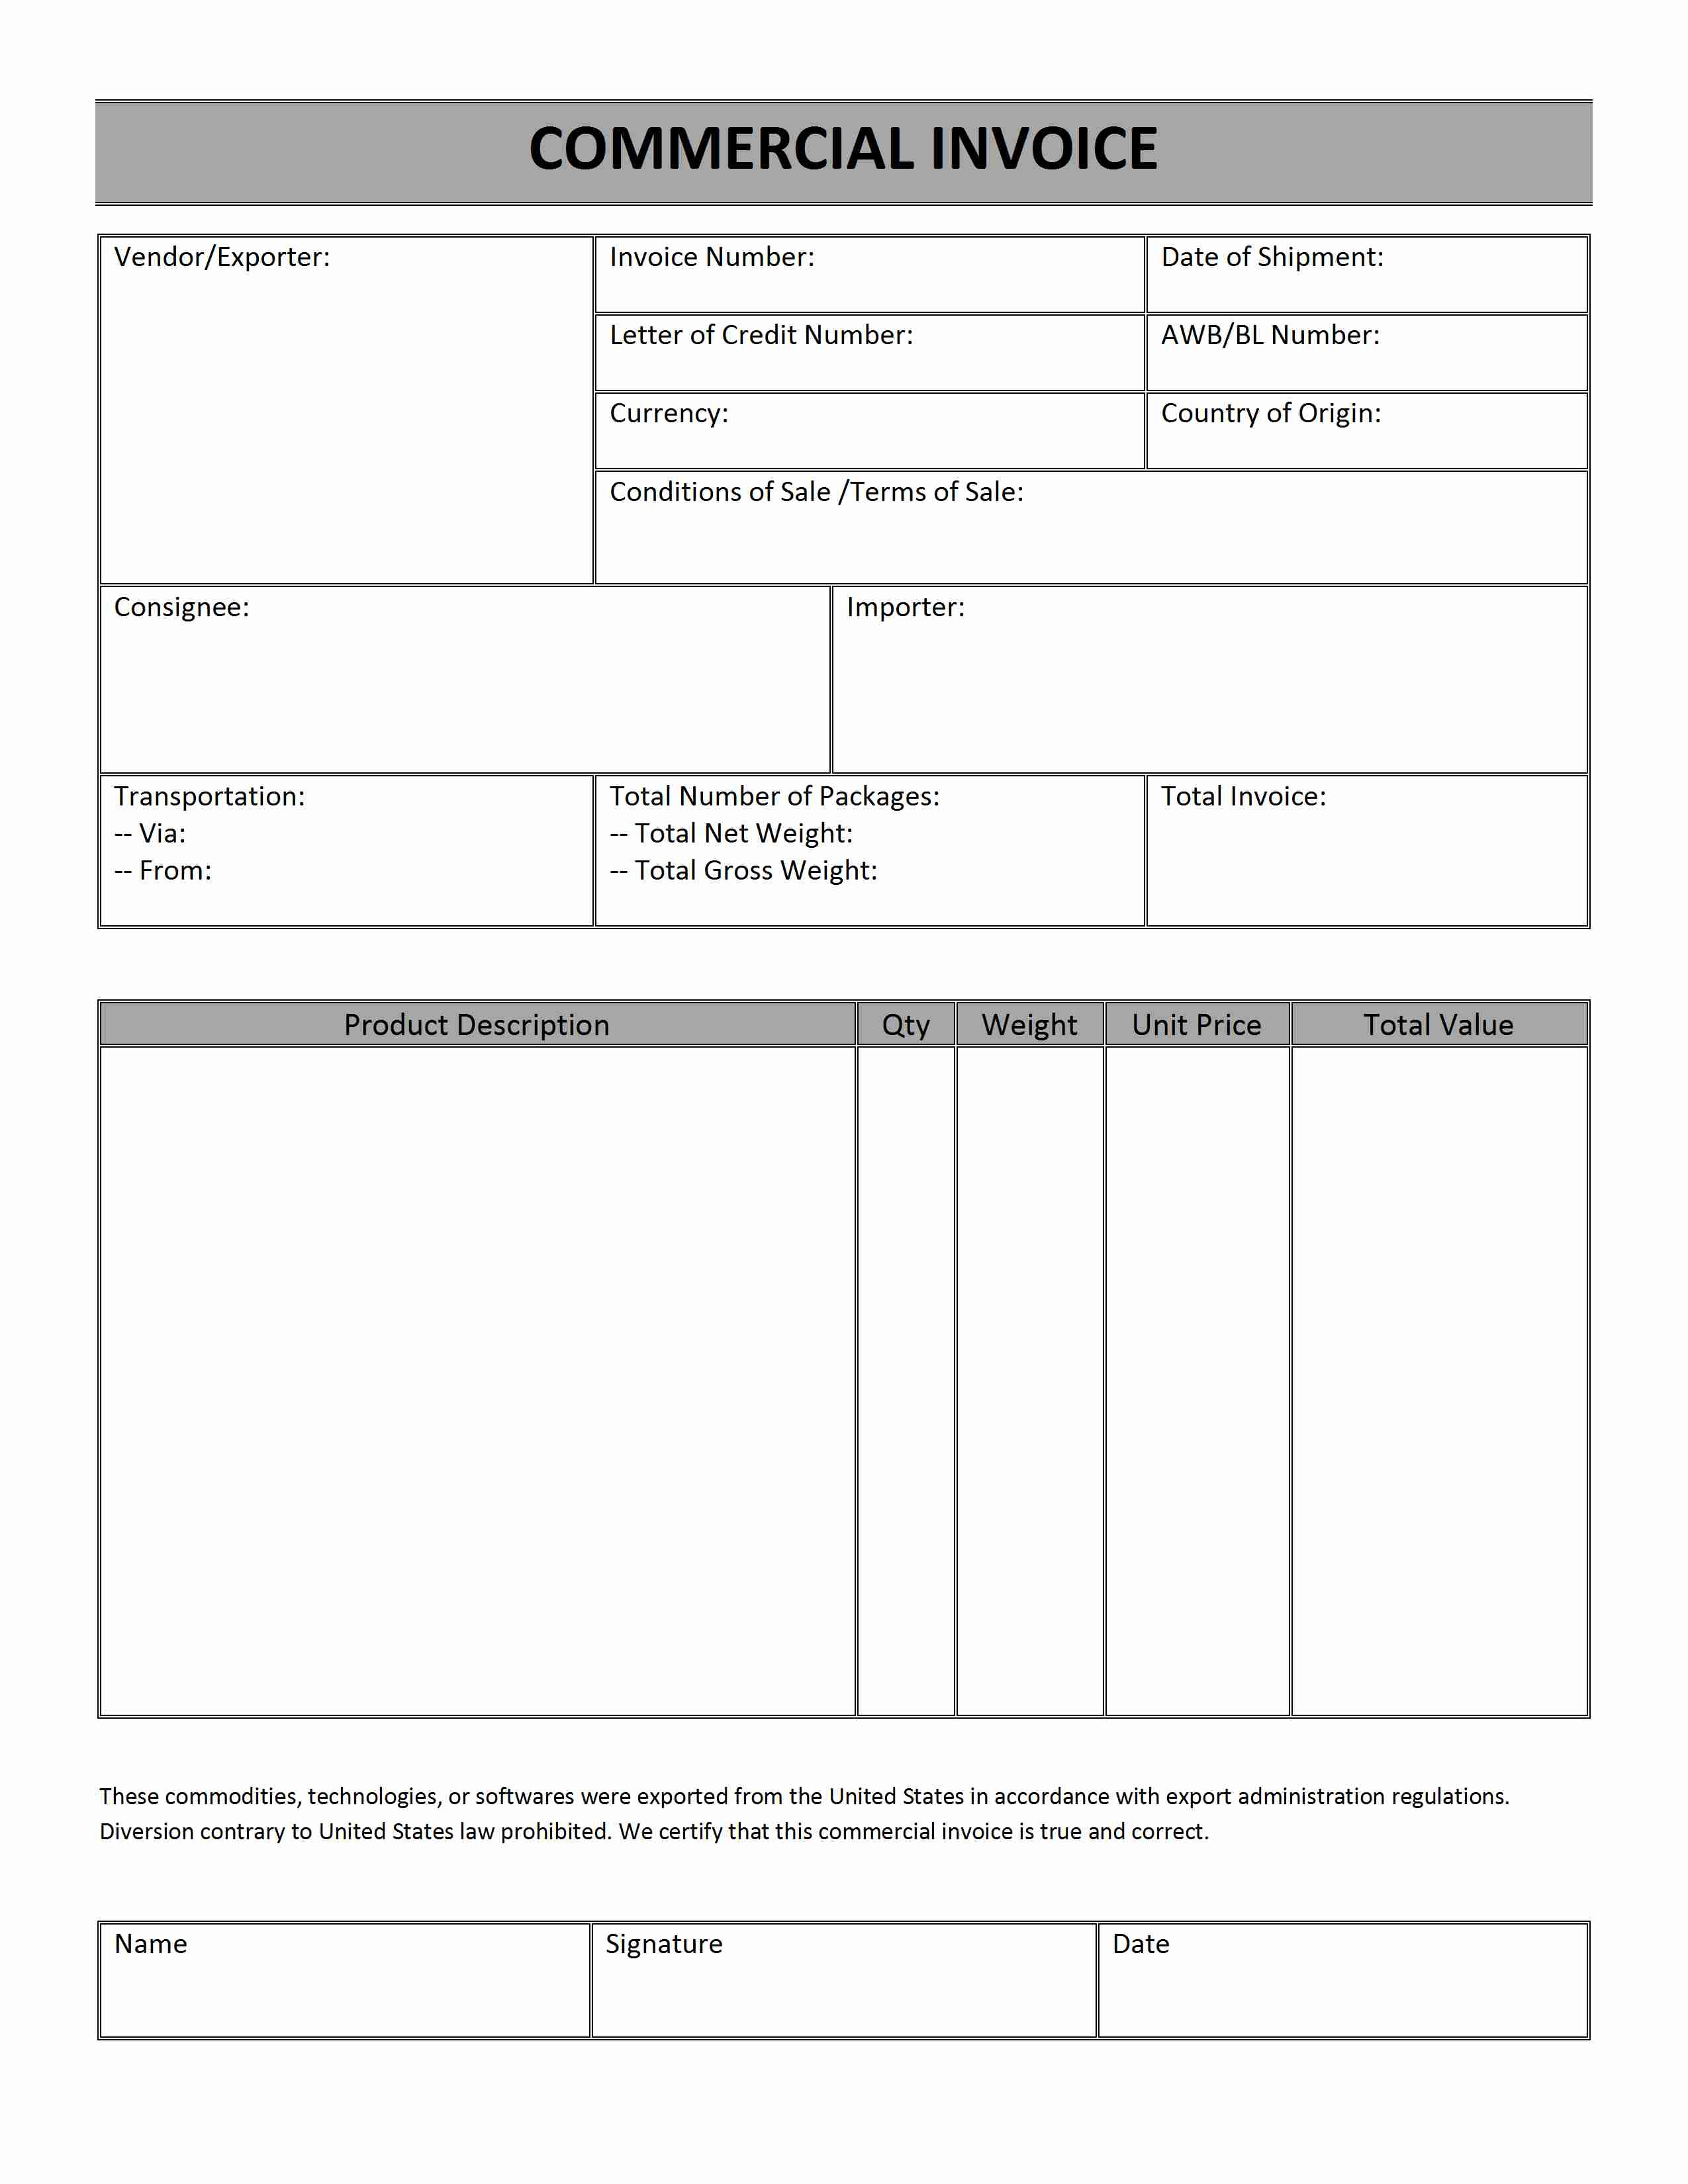 Darkfaderus  Mesmerizing Printable Sales Invoice Simple Invoice Form Free Invoice  With Likable Printable Receipt Free  Free Printable Raffle Tickets  Receipt   Printable With Comely Contractor Invoice Template Free Also Dhl Commercial Invoice Template In Addition Invoice Pdf Generator And Florida Toll By Plate Invoice As Well As Create An Invoice Form Additionally Invoices Forms From Happytomco With Darkfaderus  Likable Printable Sales Invoice Simple Invoice Form Free Invoice  With Comely Printable Receipt Free  Free Printable Raffle Tickets  Receipt   Printable And Mesmerizing Contractor Invoice Template Free Also Dhl Commercial Invoice Template In Addition Invoice Pdf Generator From Happytomco